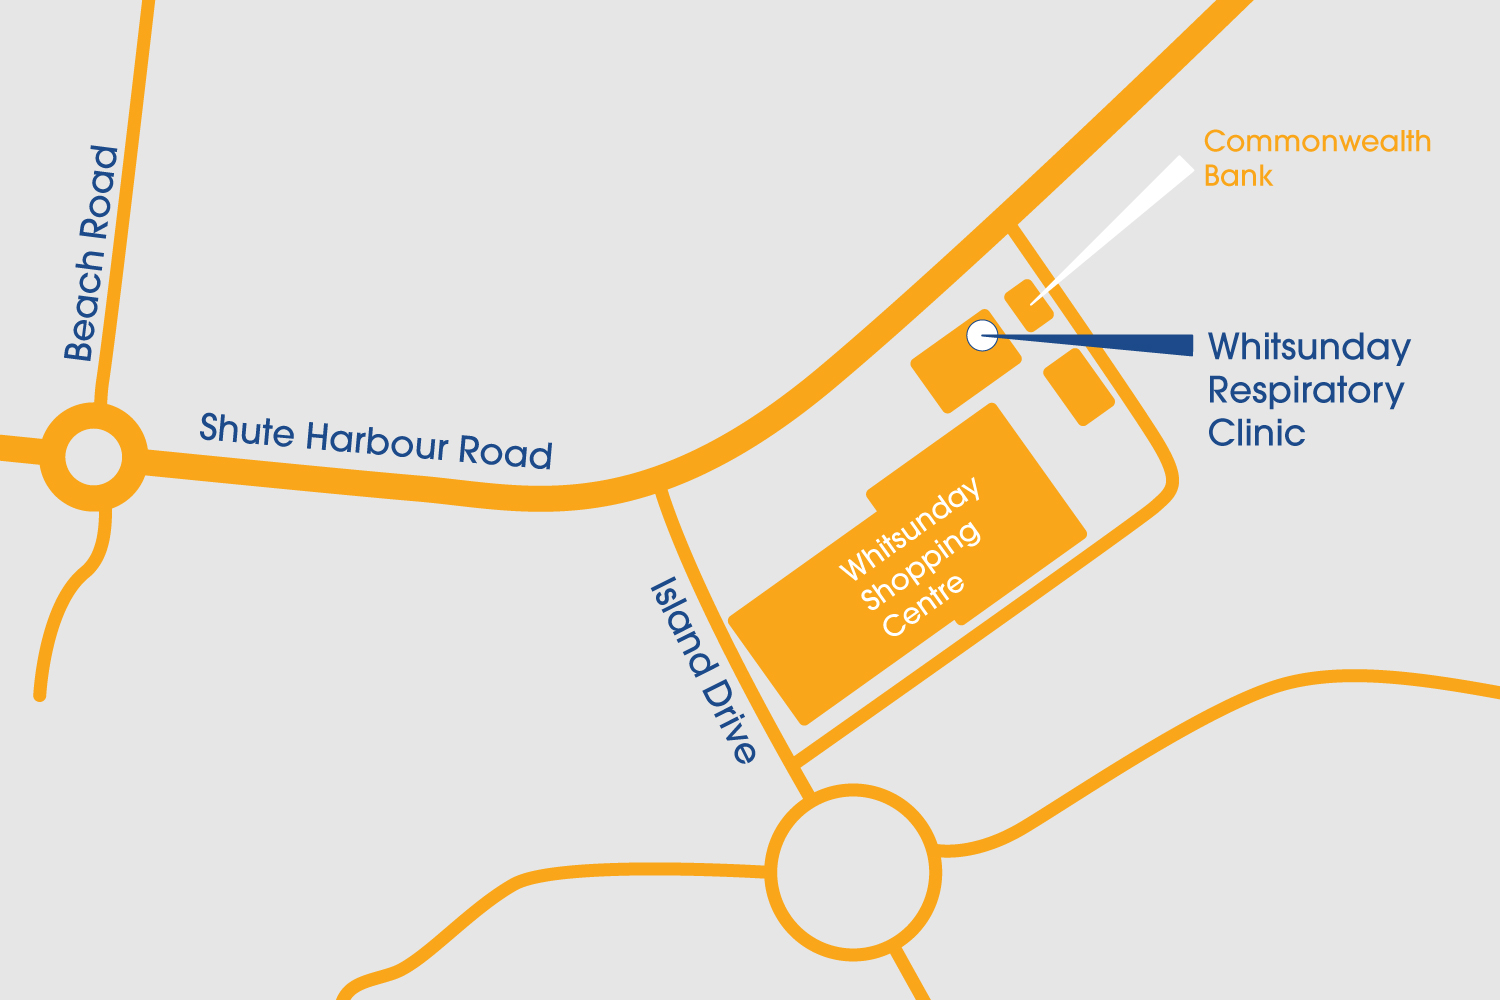 whitsundays respiratory clinic - gp proserpine, airlie beach & cannonvale clinic map